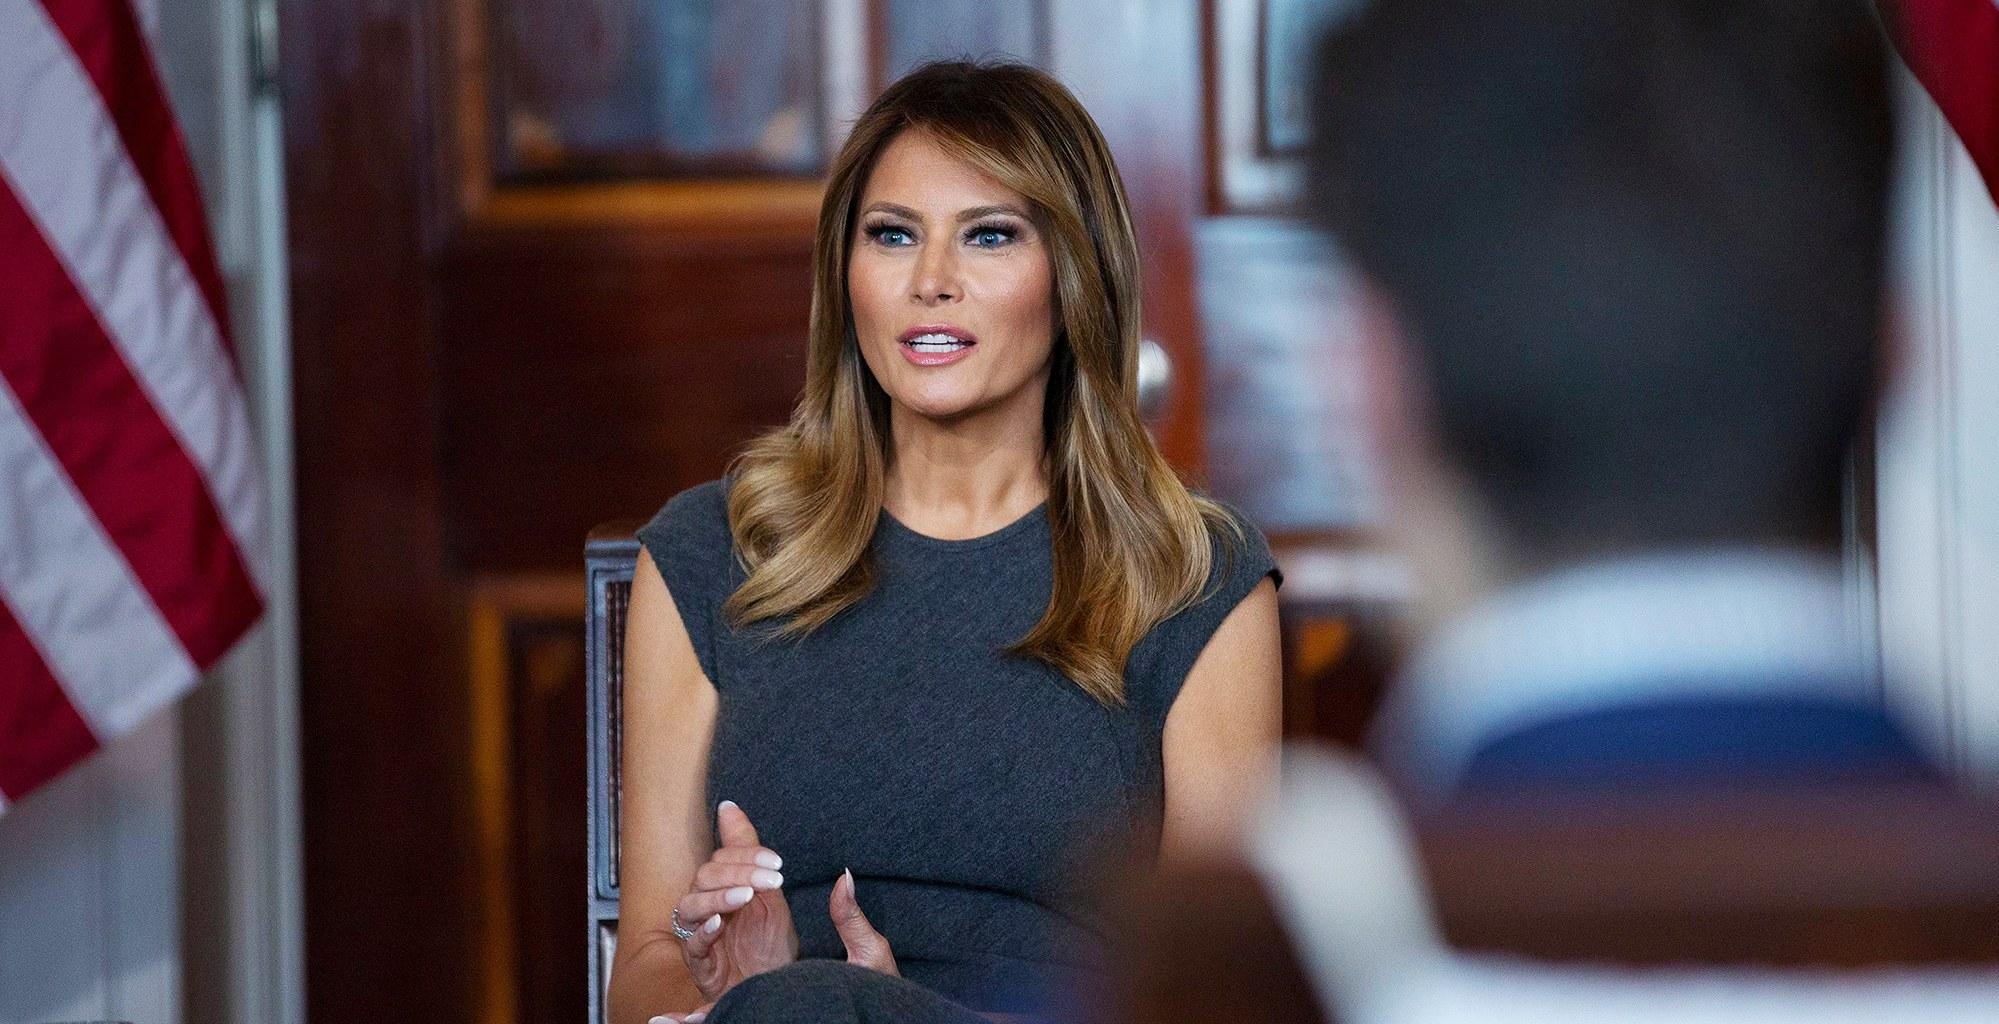 Melania Trump Gets Booed During Speech At Event In Baltimore After Donald Dubbed The City As A 'Disgusting Rat-Infested Mess'